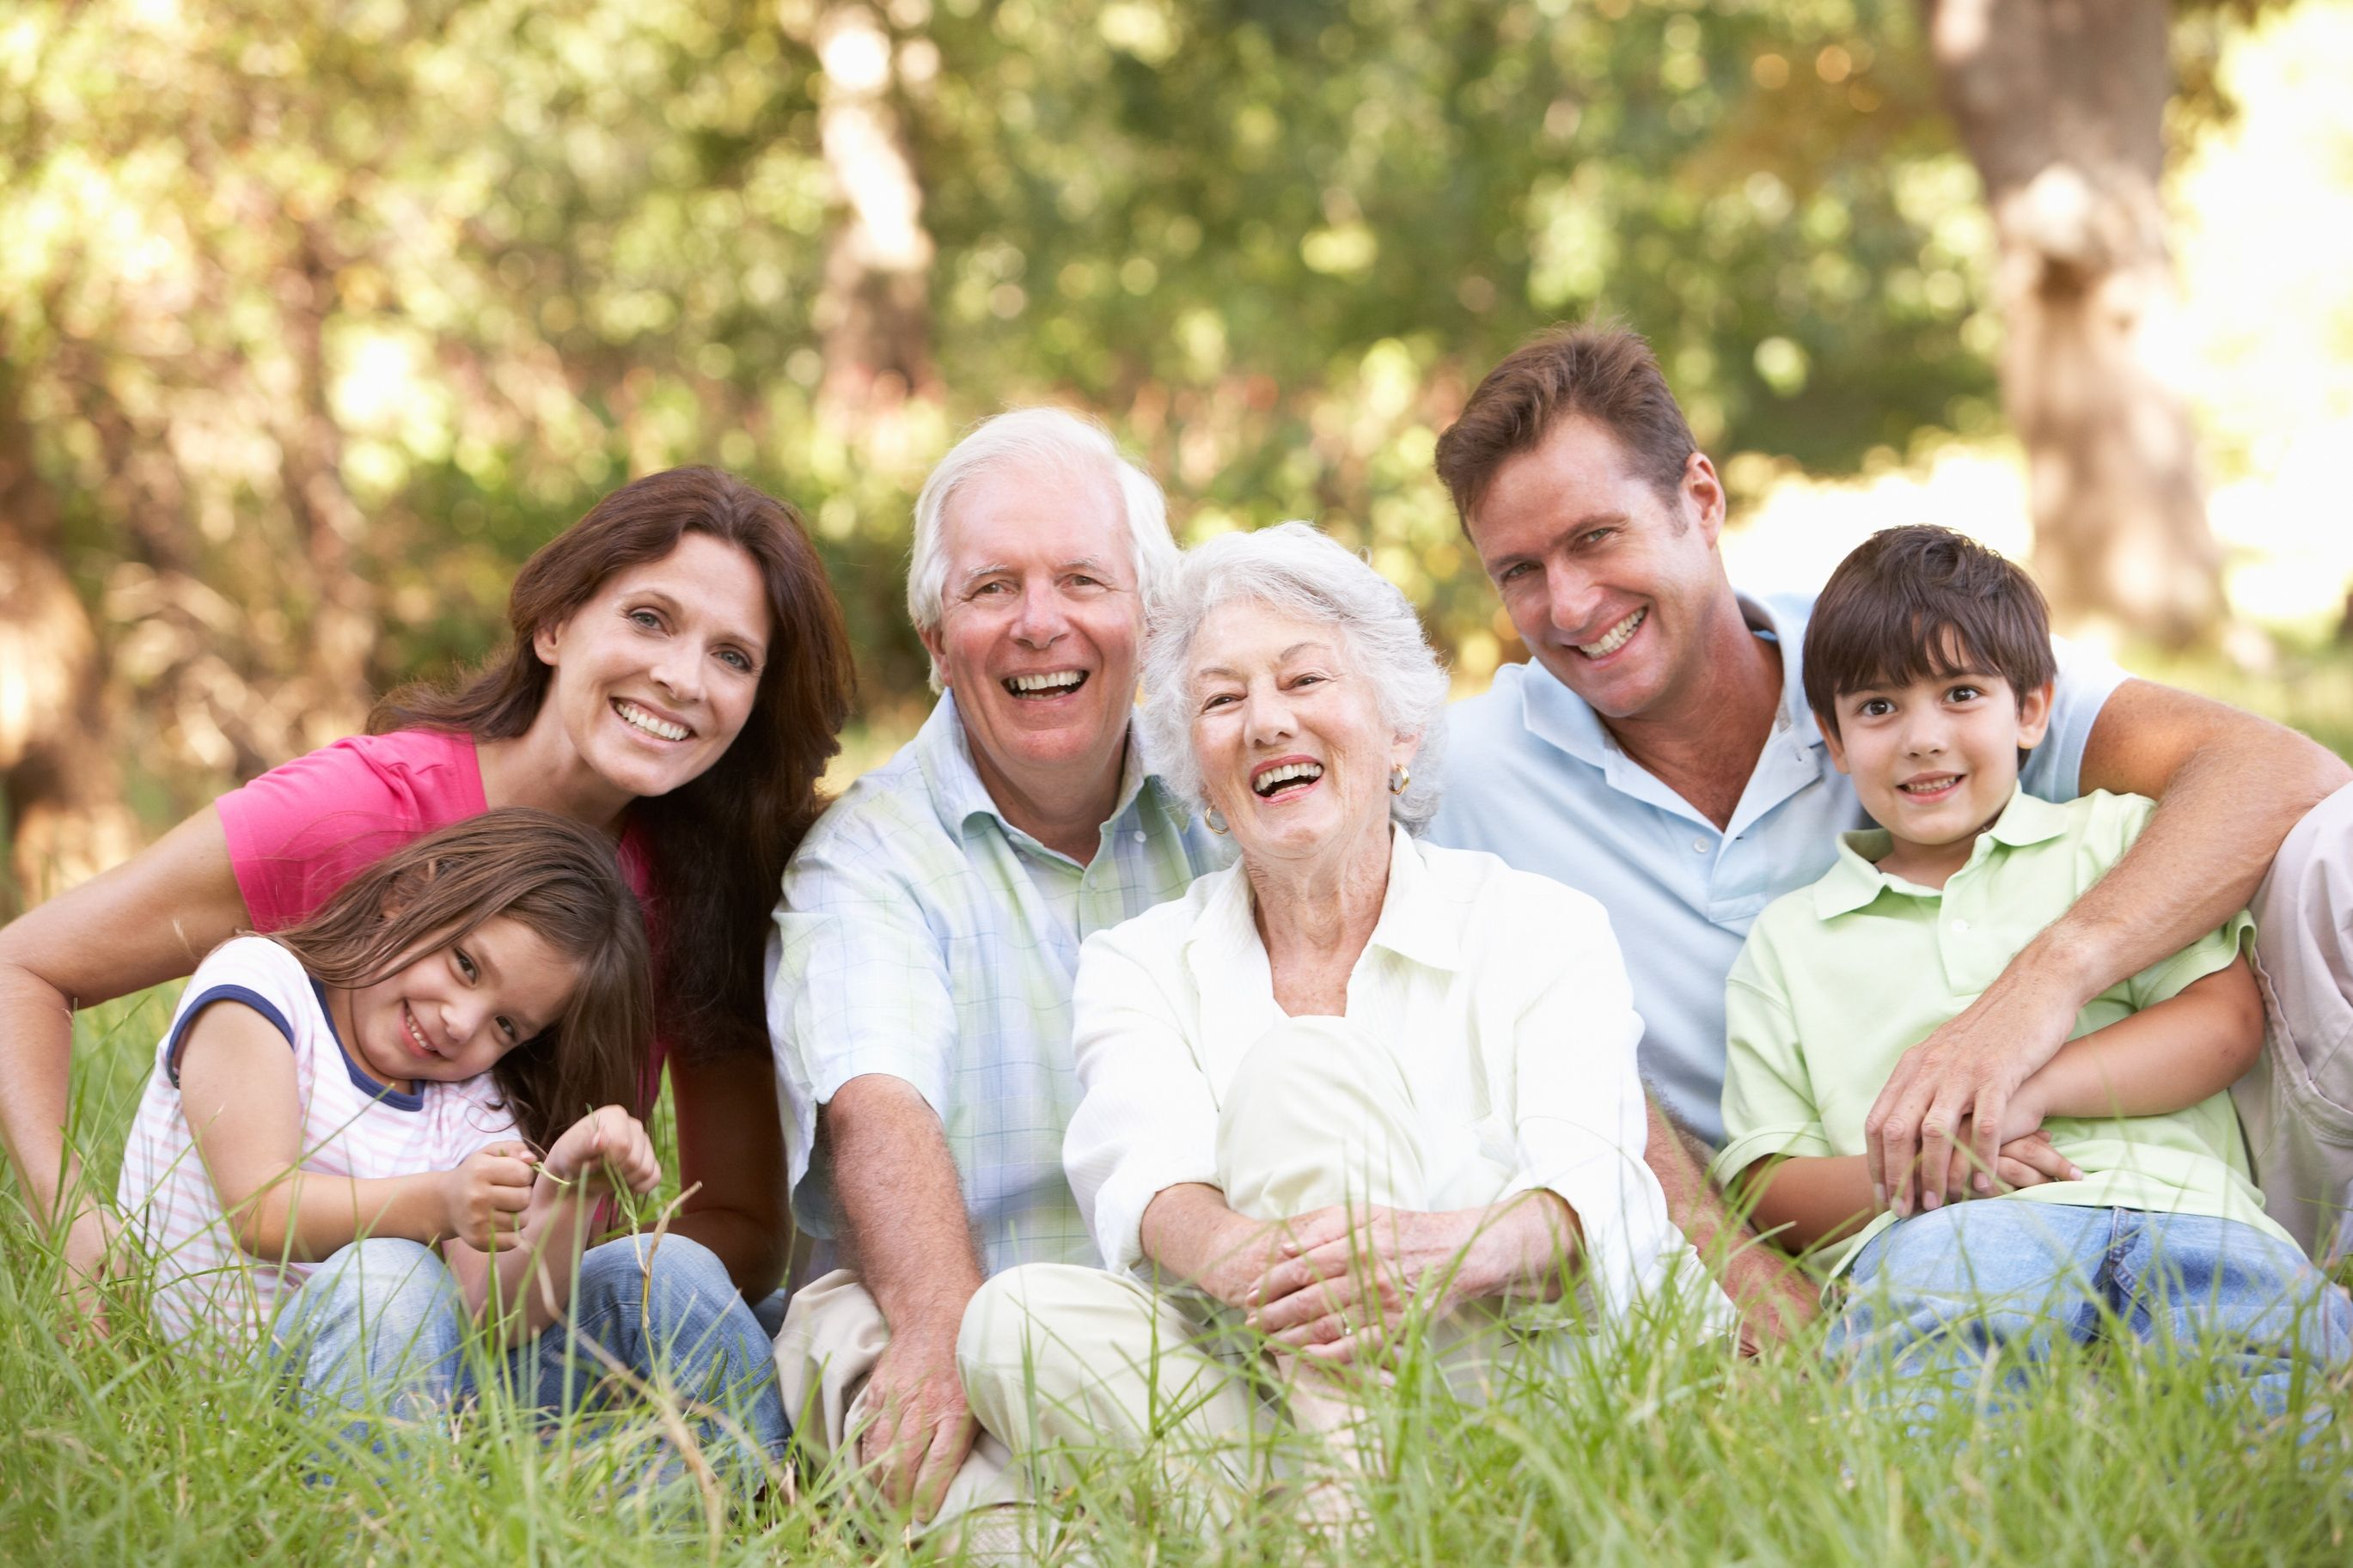 Family Picture Images Of Grandparents Family Grandparents Dreamstime L 14692336